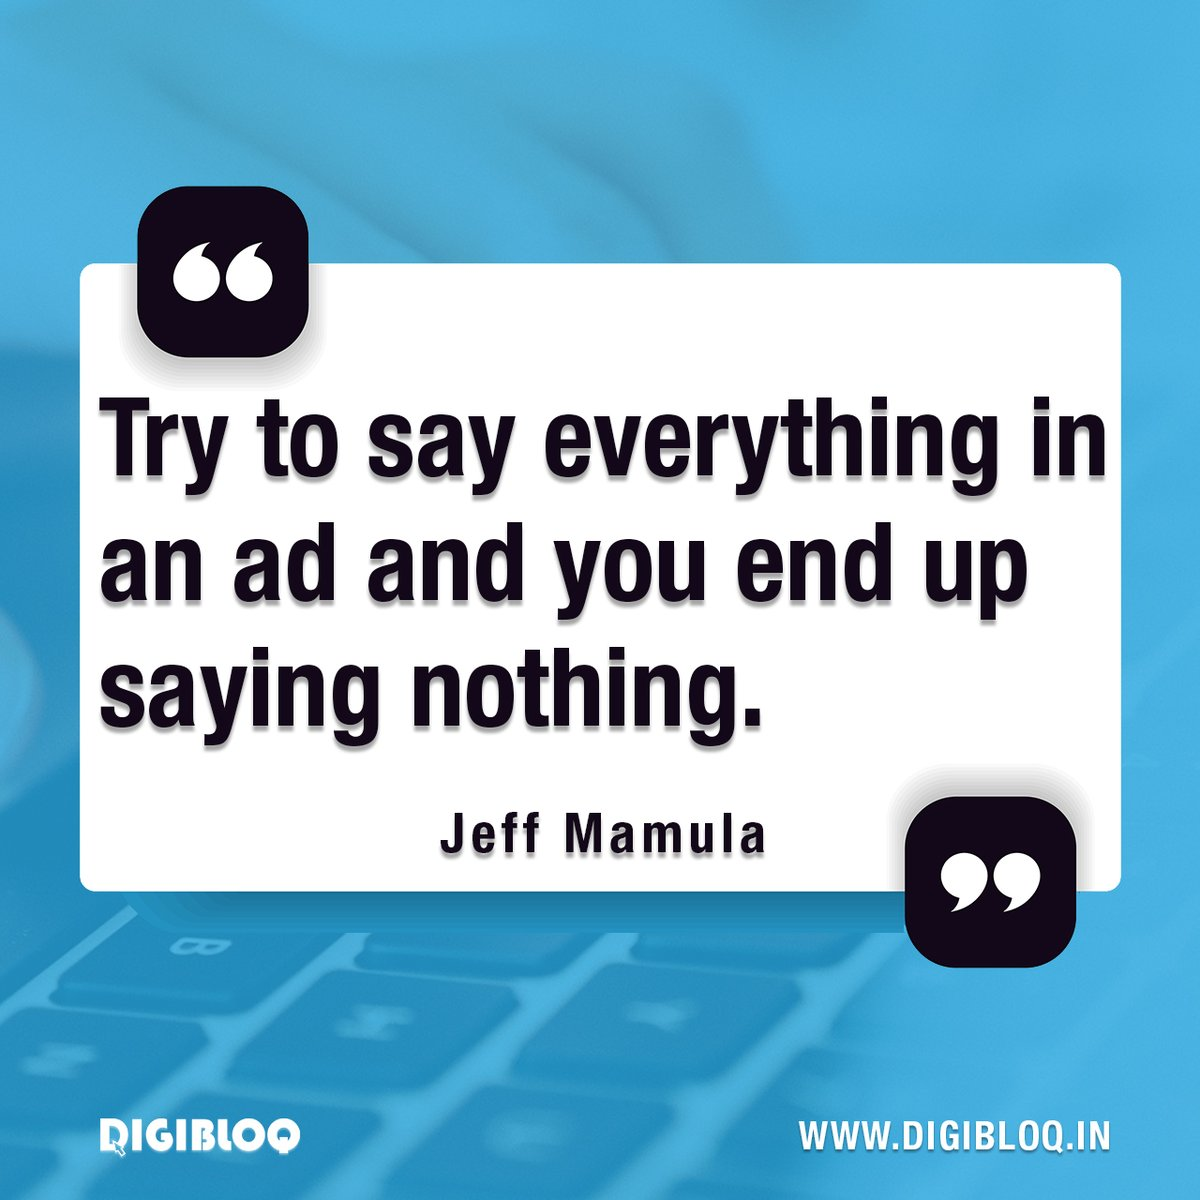 """""""Try to say everything in an ad and you end up saying nothing."""" — Jeff Mamula  https://t.co/UWPFgnFm5x  #digibloq #digital #marketing #business #marketingquotes  #JeffMamula #growbusiness https://t.co/FdRMirTCPs"""